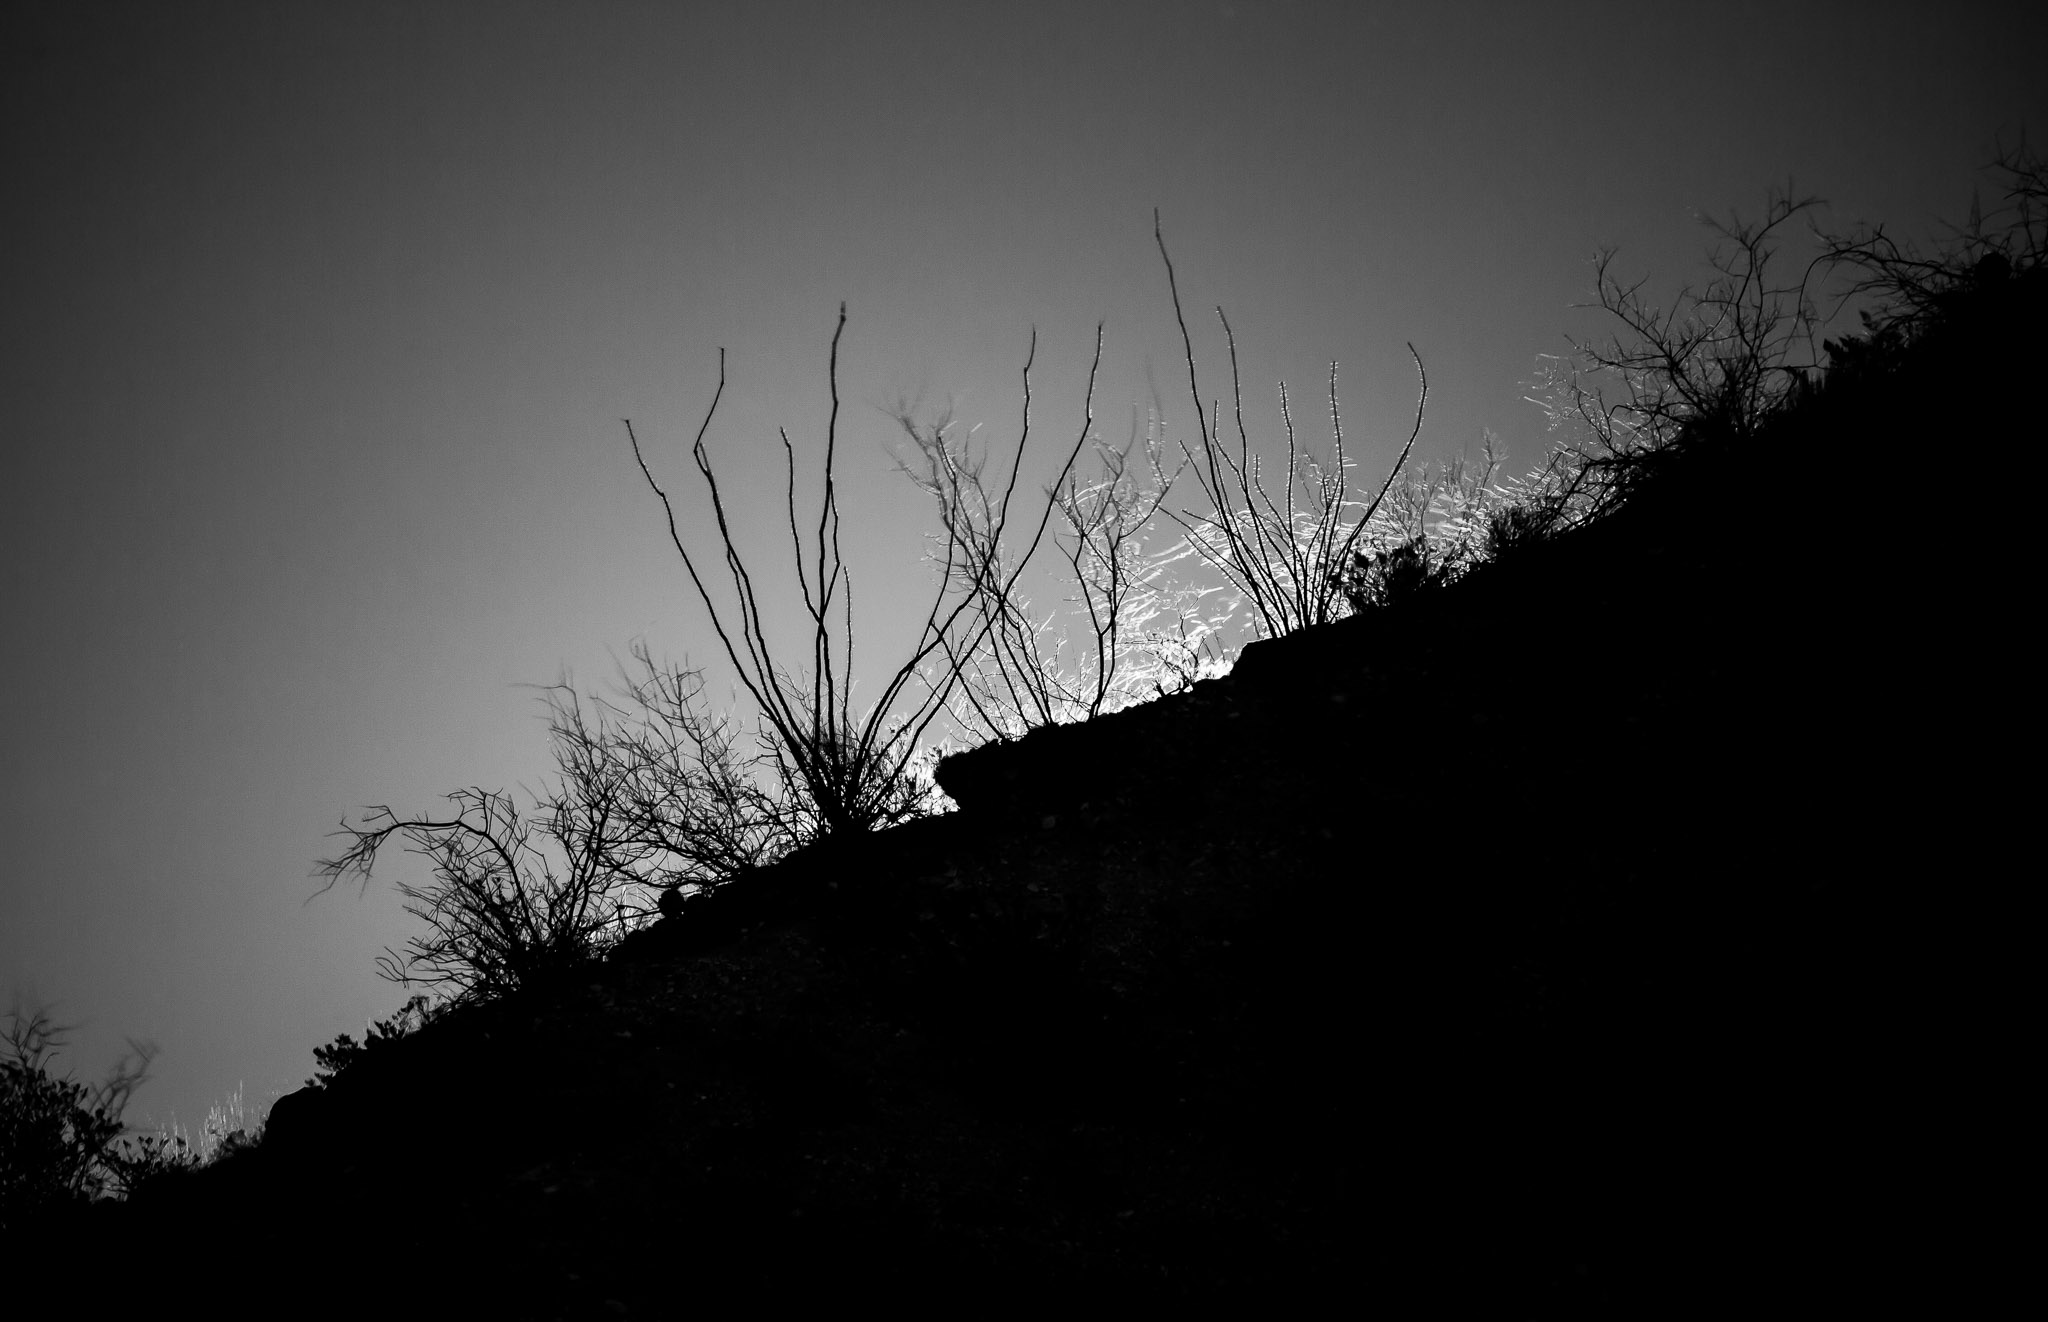 Moon rising behind the mountain, Caballo Lake State Park, Caballo NM, December 24, 2015